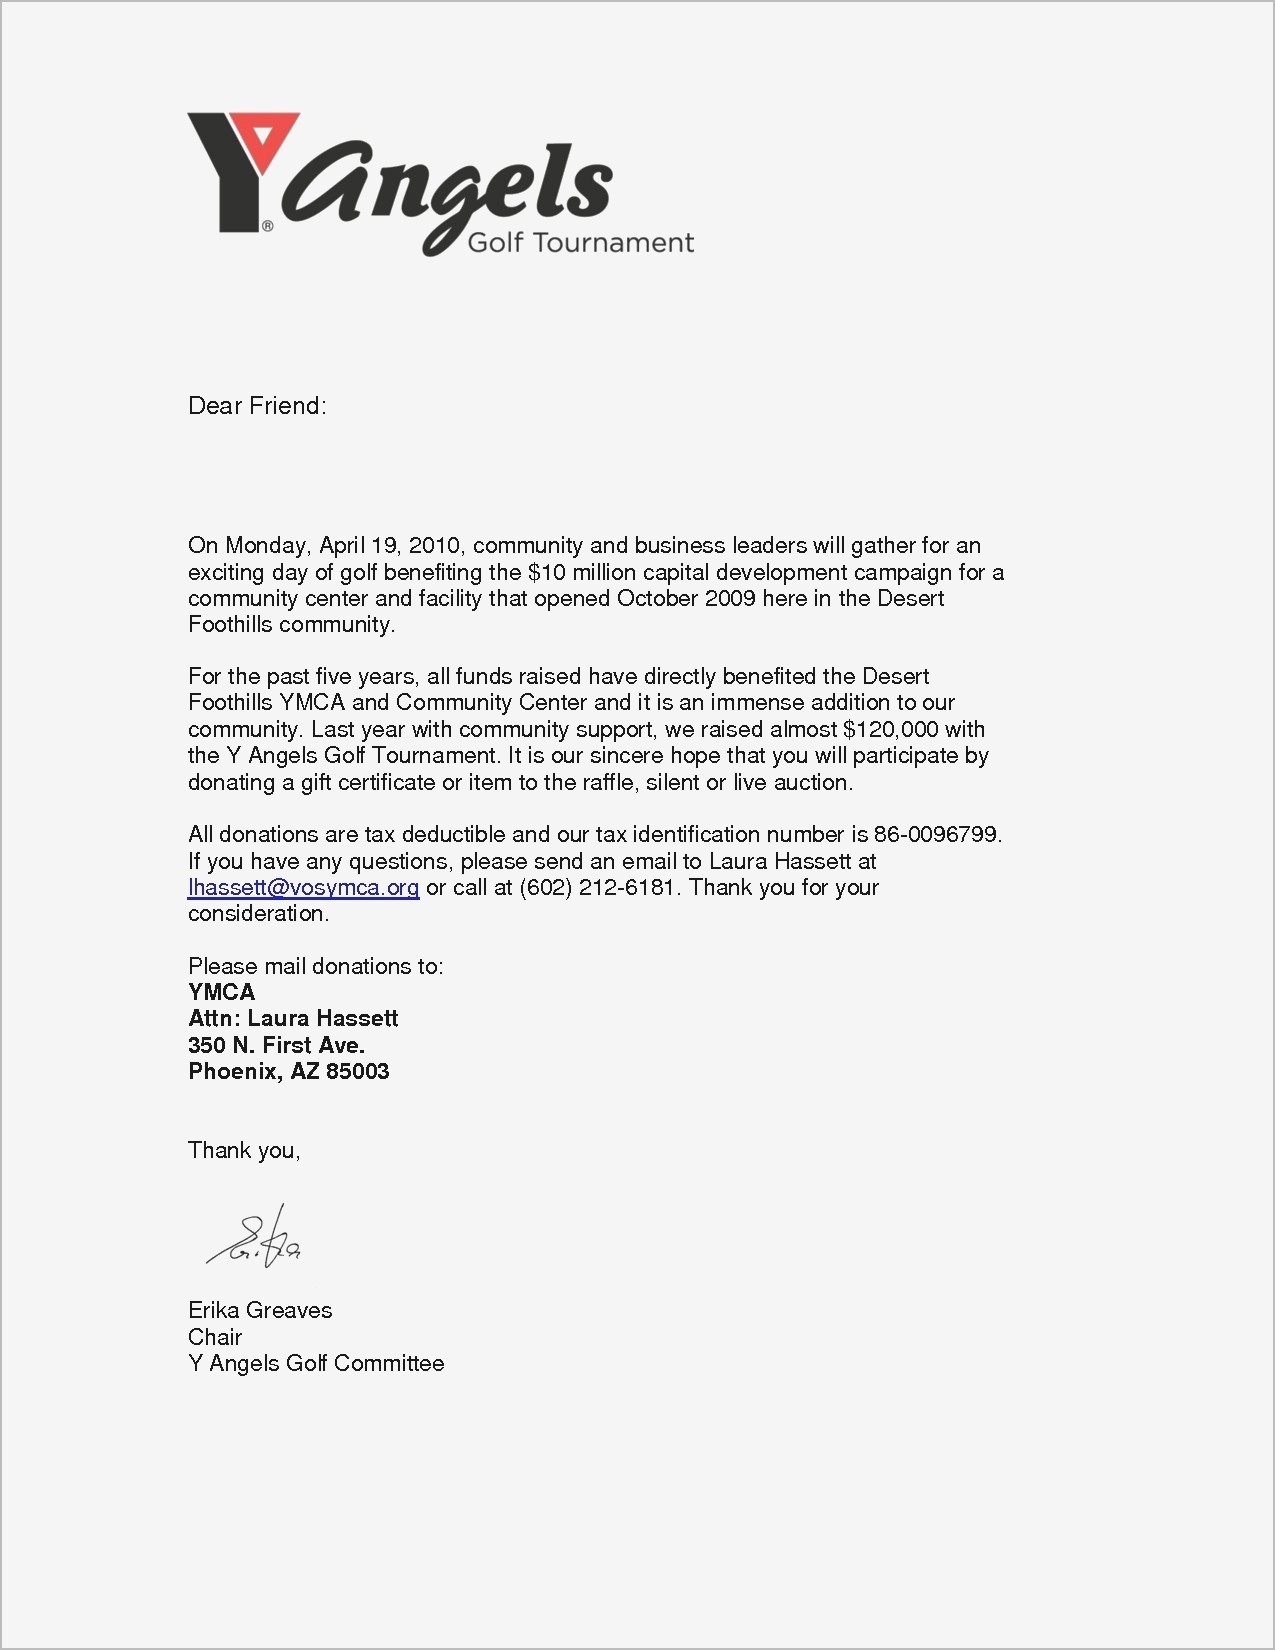 Golf tournament Thank You Letter Template - Free Example Letter Samples Letters Request Donation Fresh How to